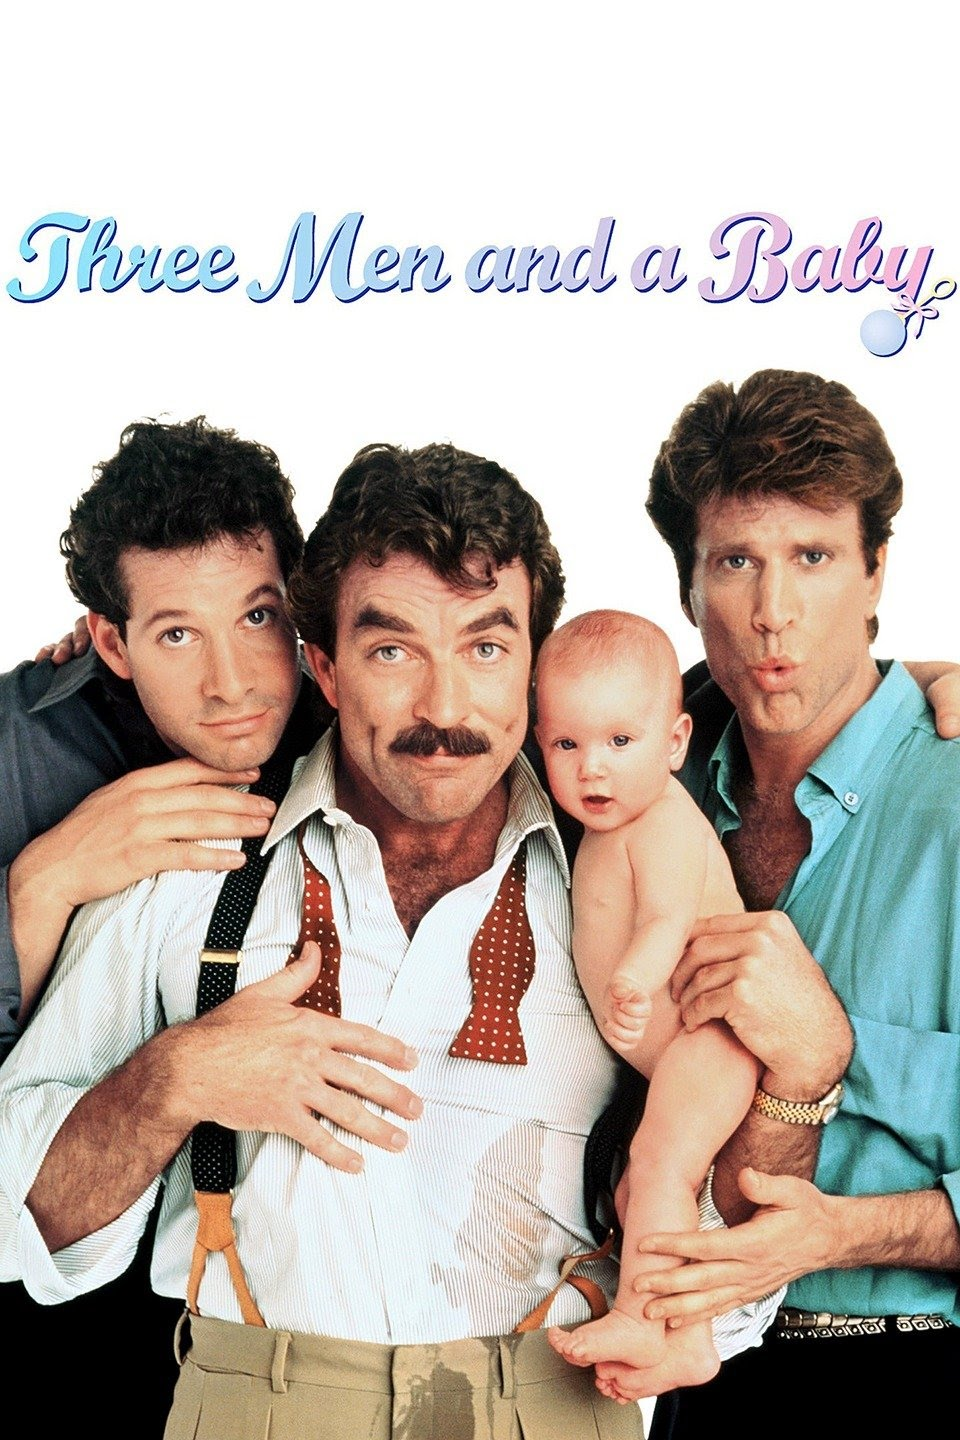 File:Three Men and a Baby.jpg